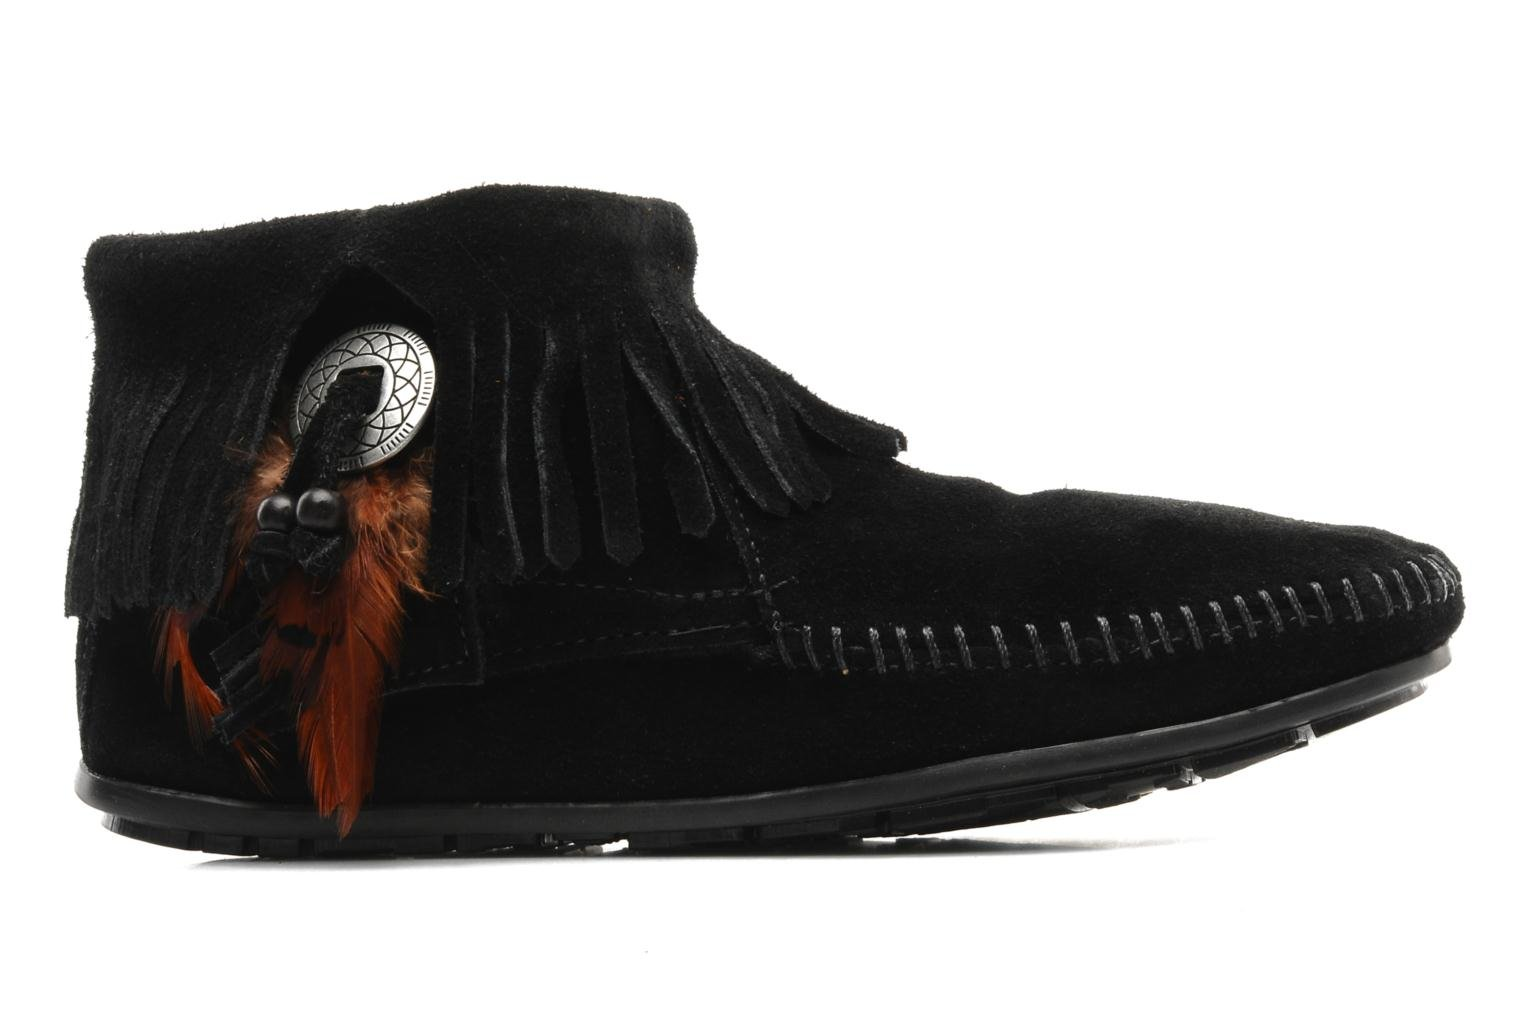 CONCHOFEATHER BT Black Suede